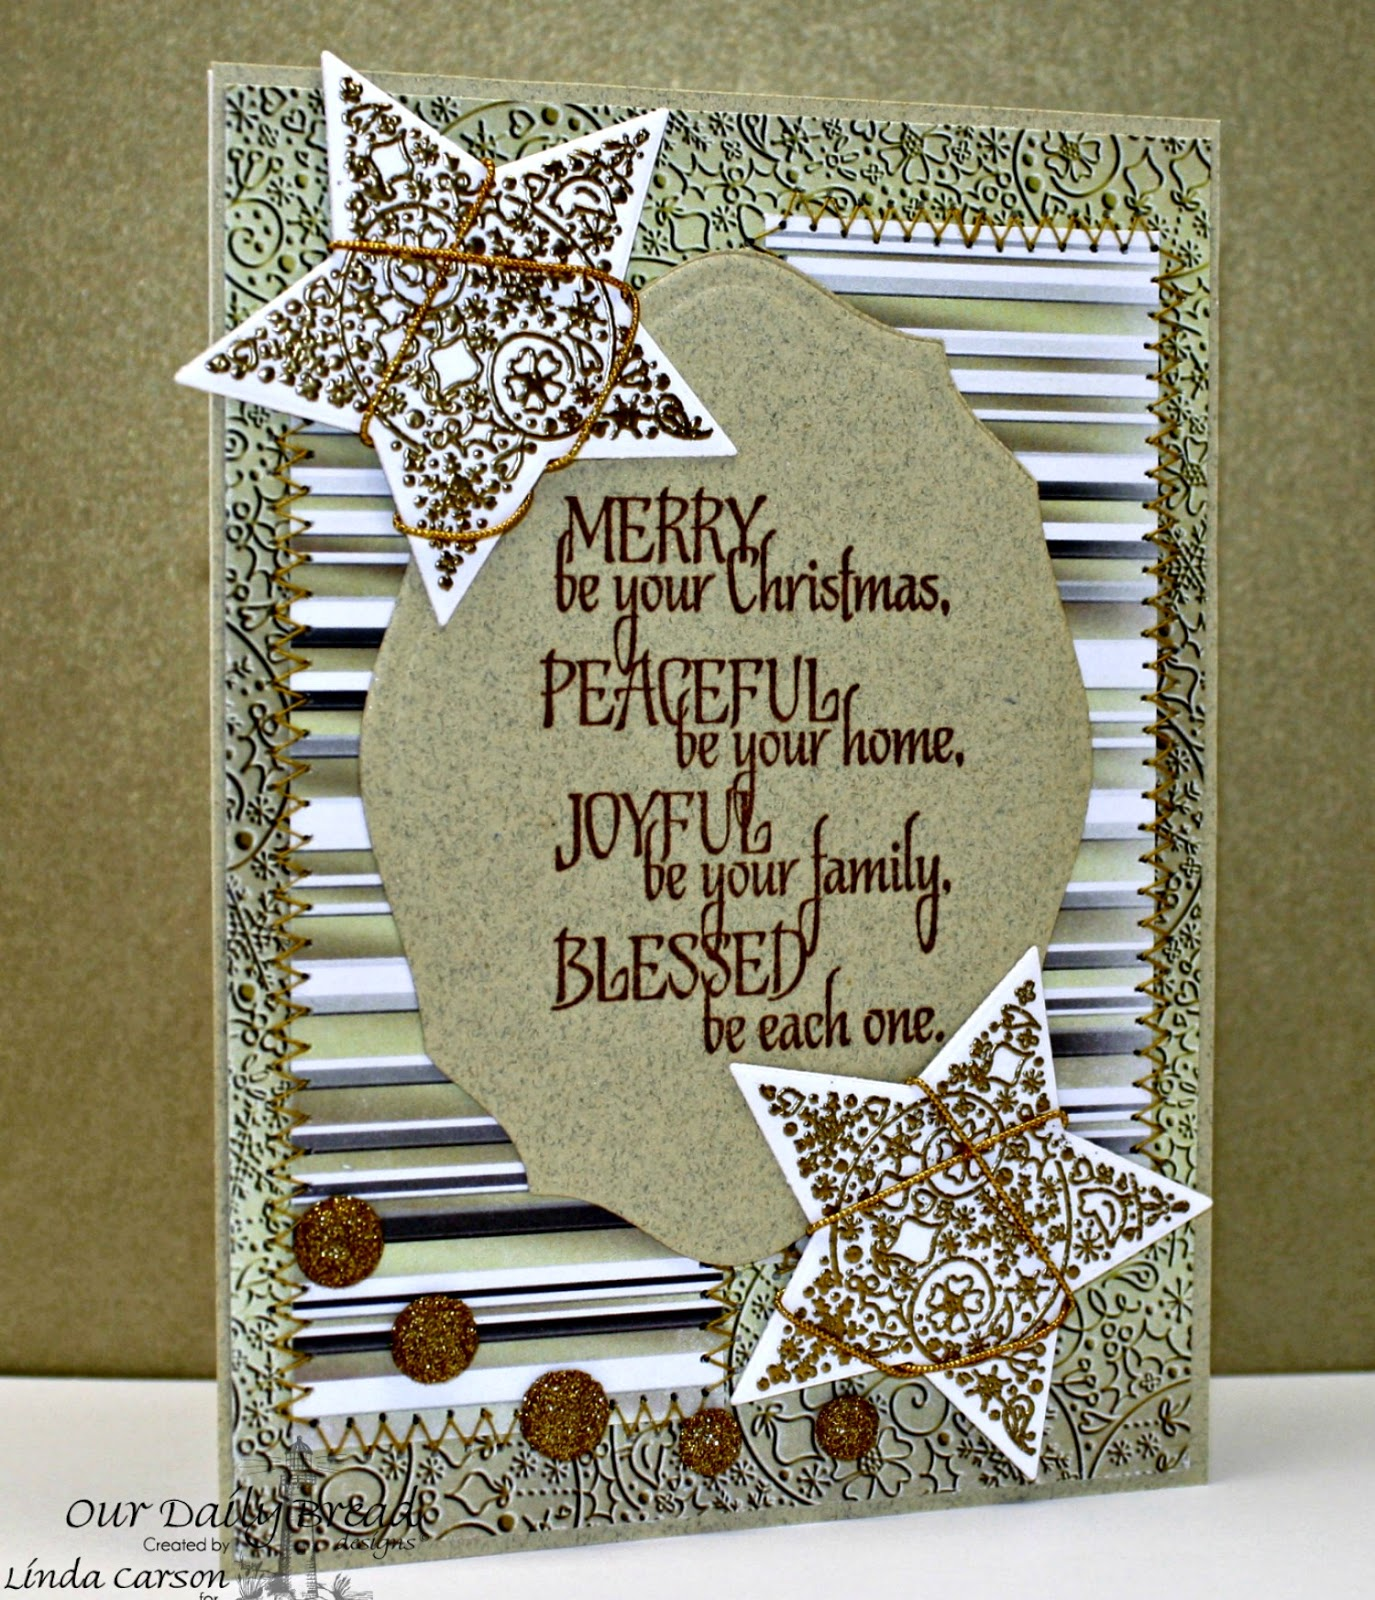 Our Daily Bread Designs, Sparkling Stars dies, His Birth, Winter Collection 2014, designer Linda Carson